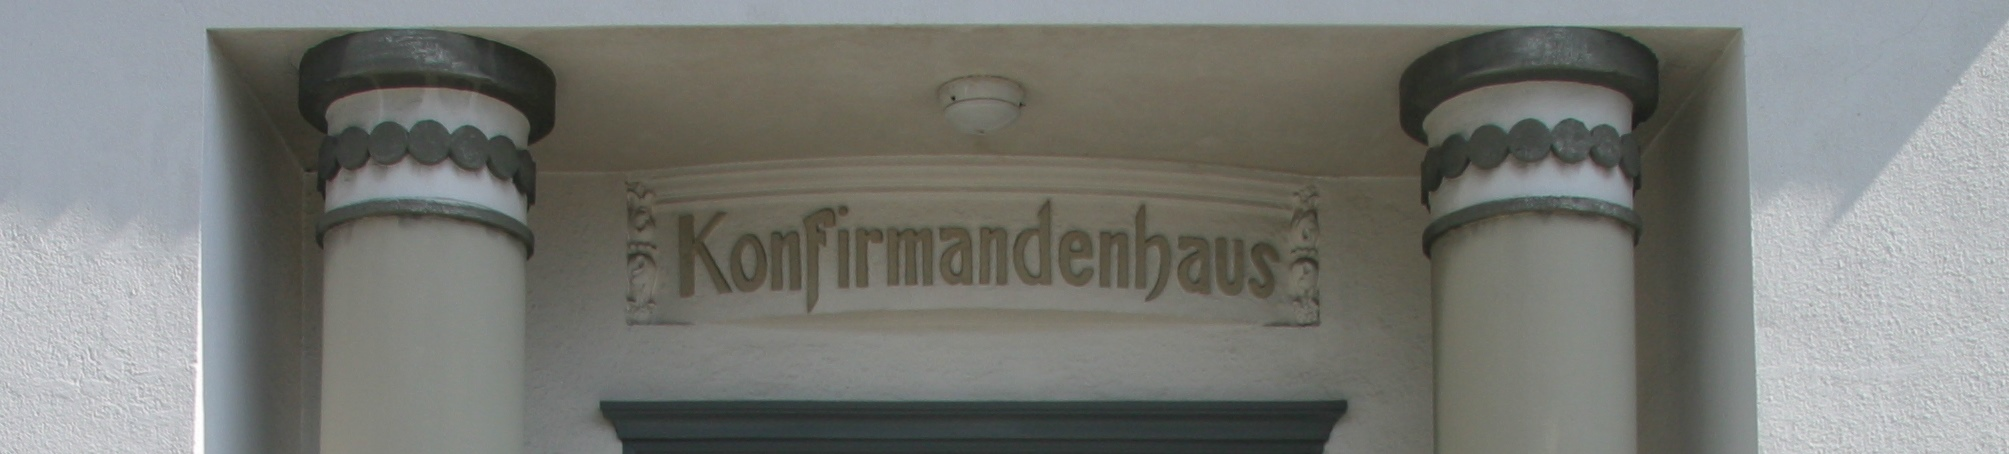 Ehemaliges Konfirmandenhaus in Burbach